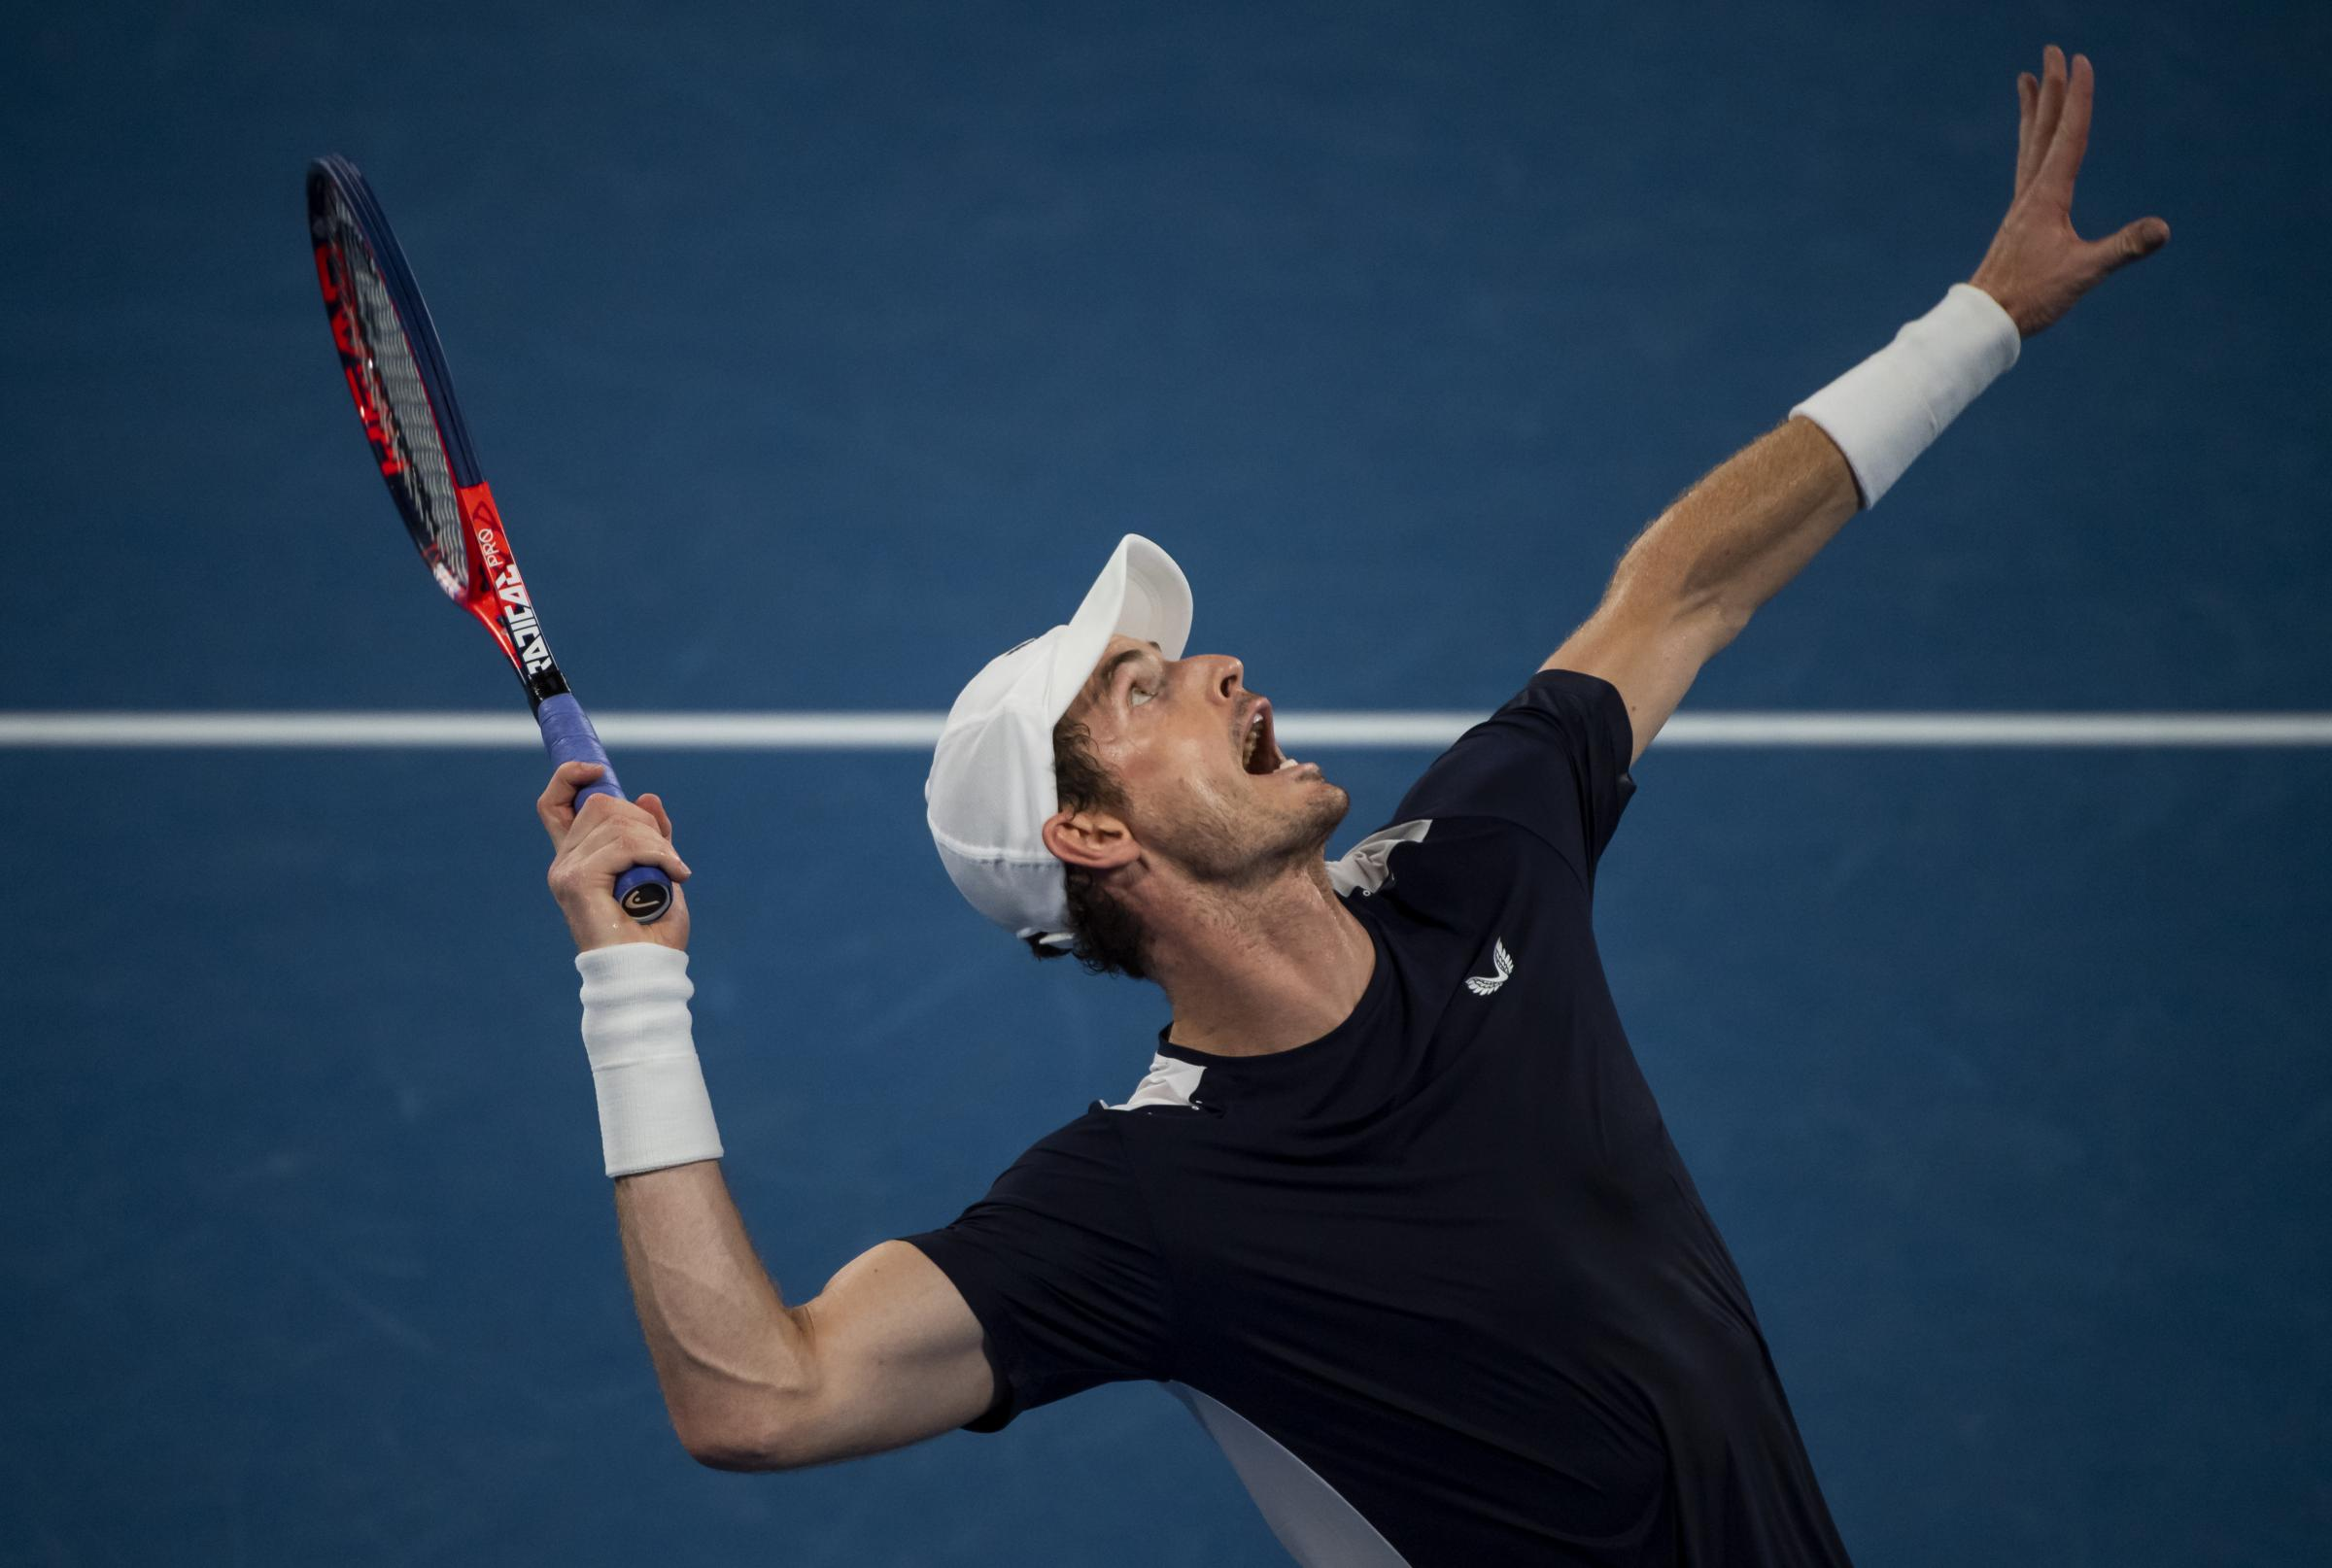 Andy Murray is yet to make a final decision on whether to have hip surgery but has pulled out of a tournament in Marseille next month PHOTO: GETTY